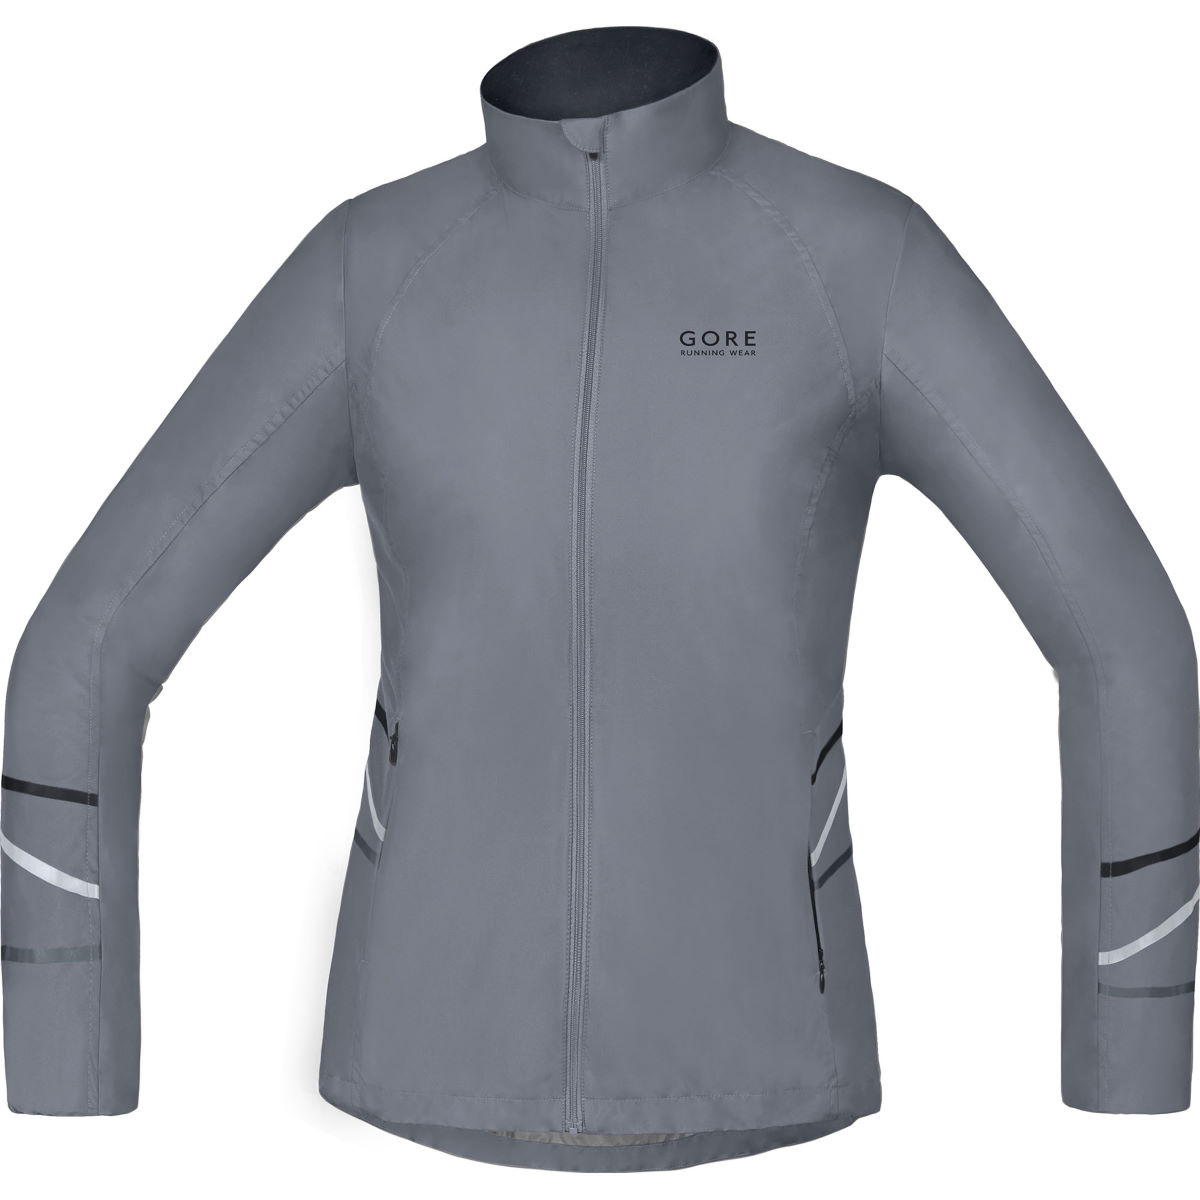 Veste Femme Gore Running Wear Mythos Windstopper Active (PE16) - L Gris Vestes de running coupe-vent